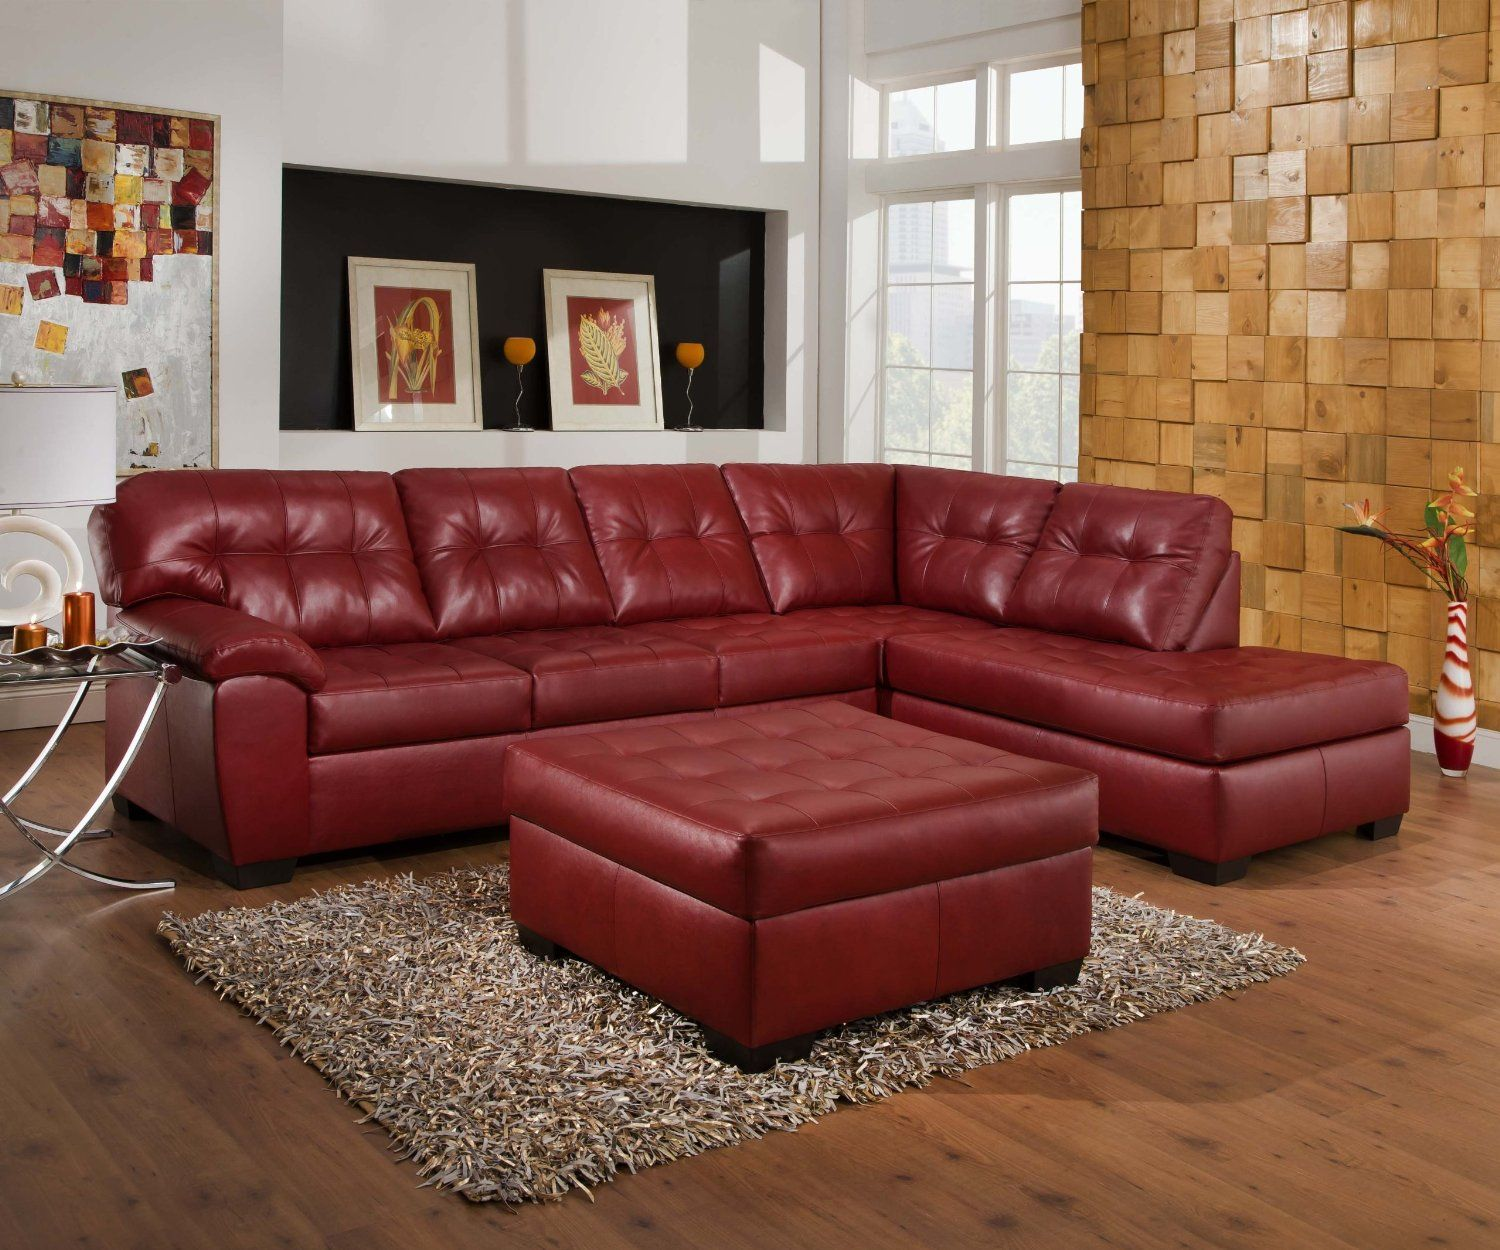 maroon couches in a room | Red Couches, Sofas and Ottomans ...